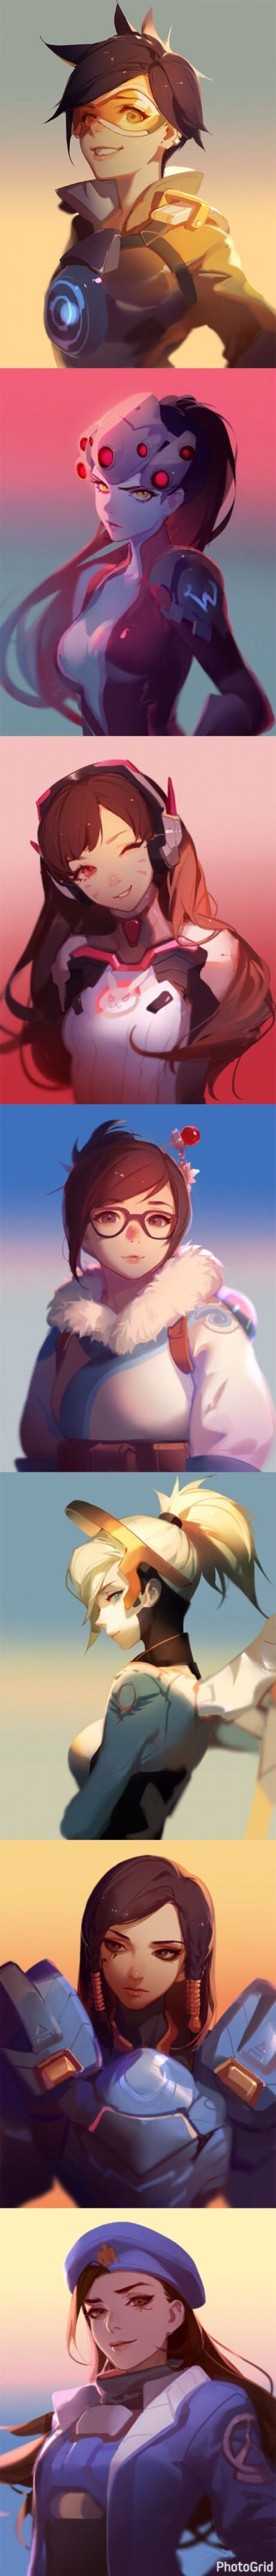 Overwatch in anime style